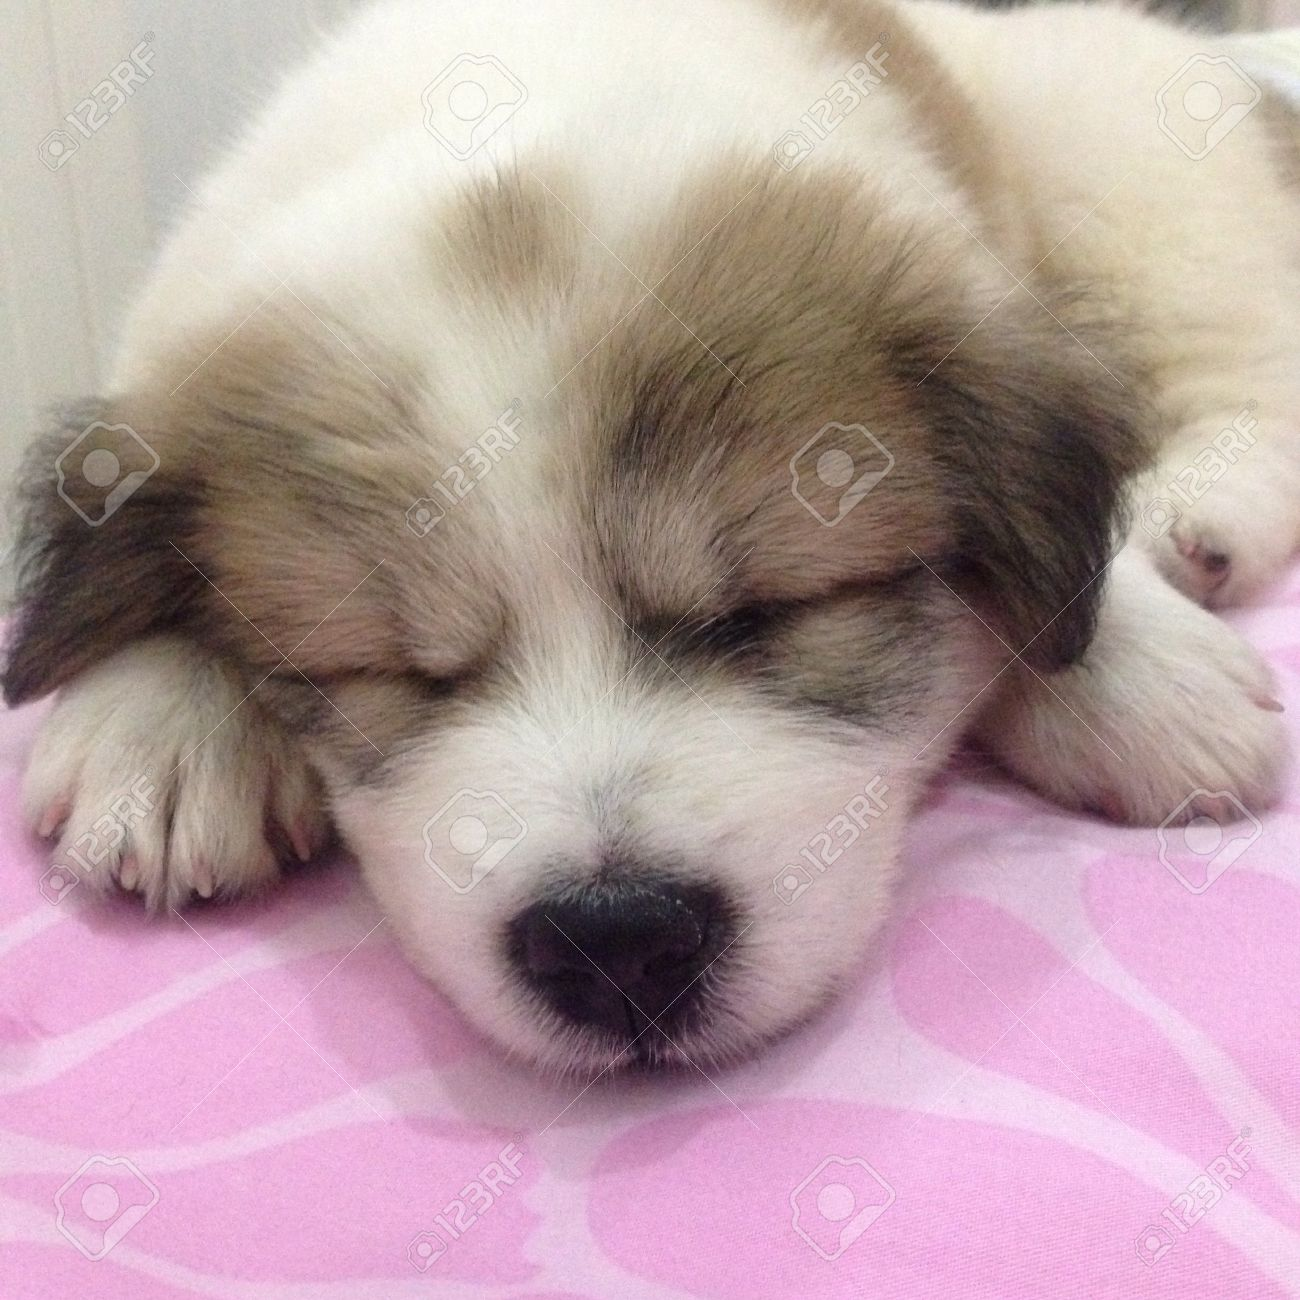 cute puppy sleeping on the bed stock photo, picture and royalty free